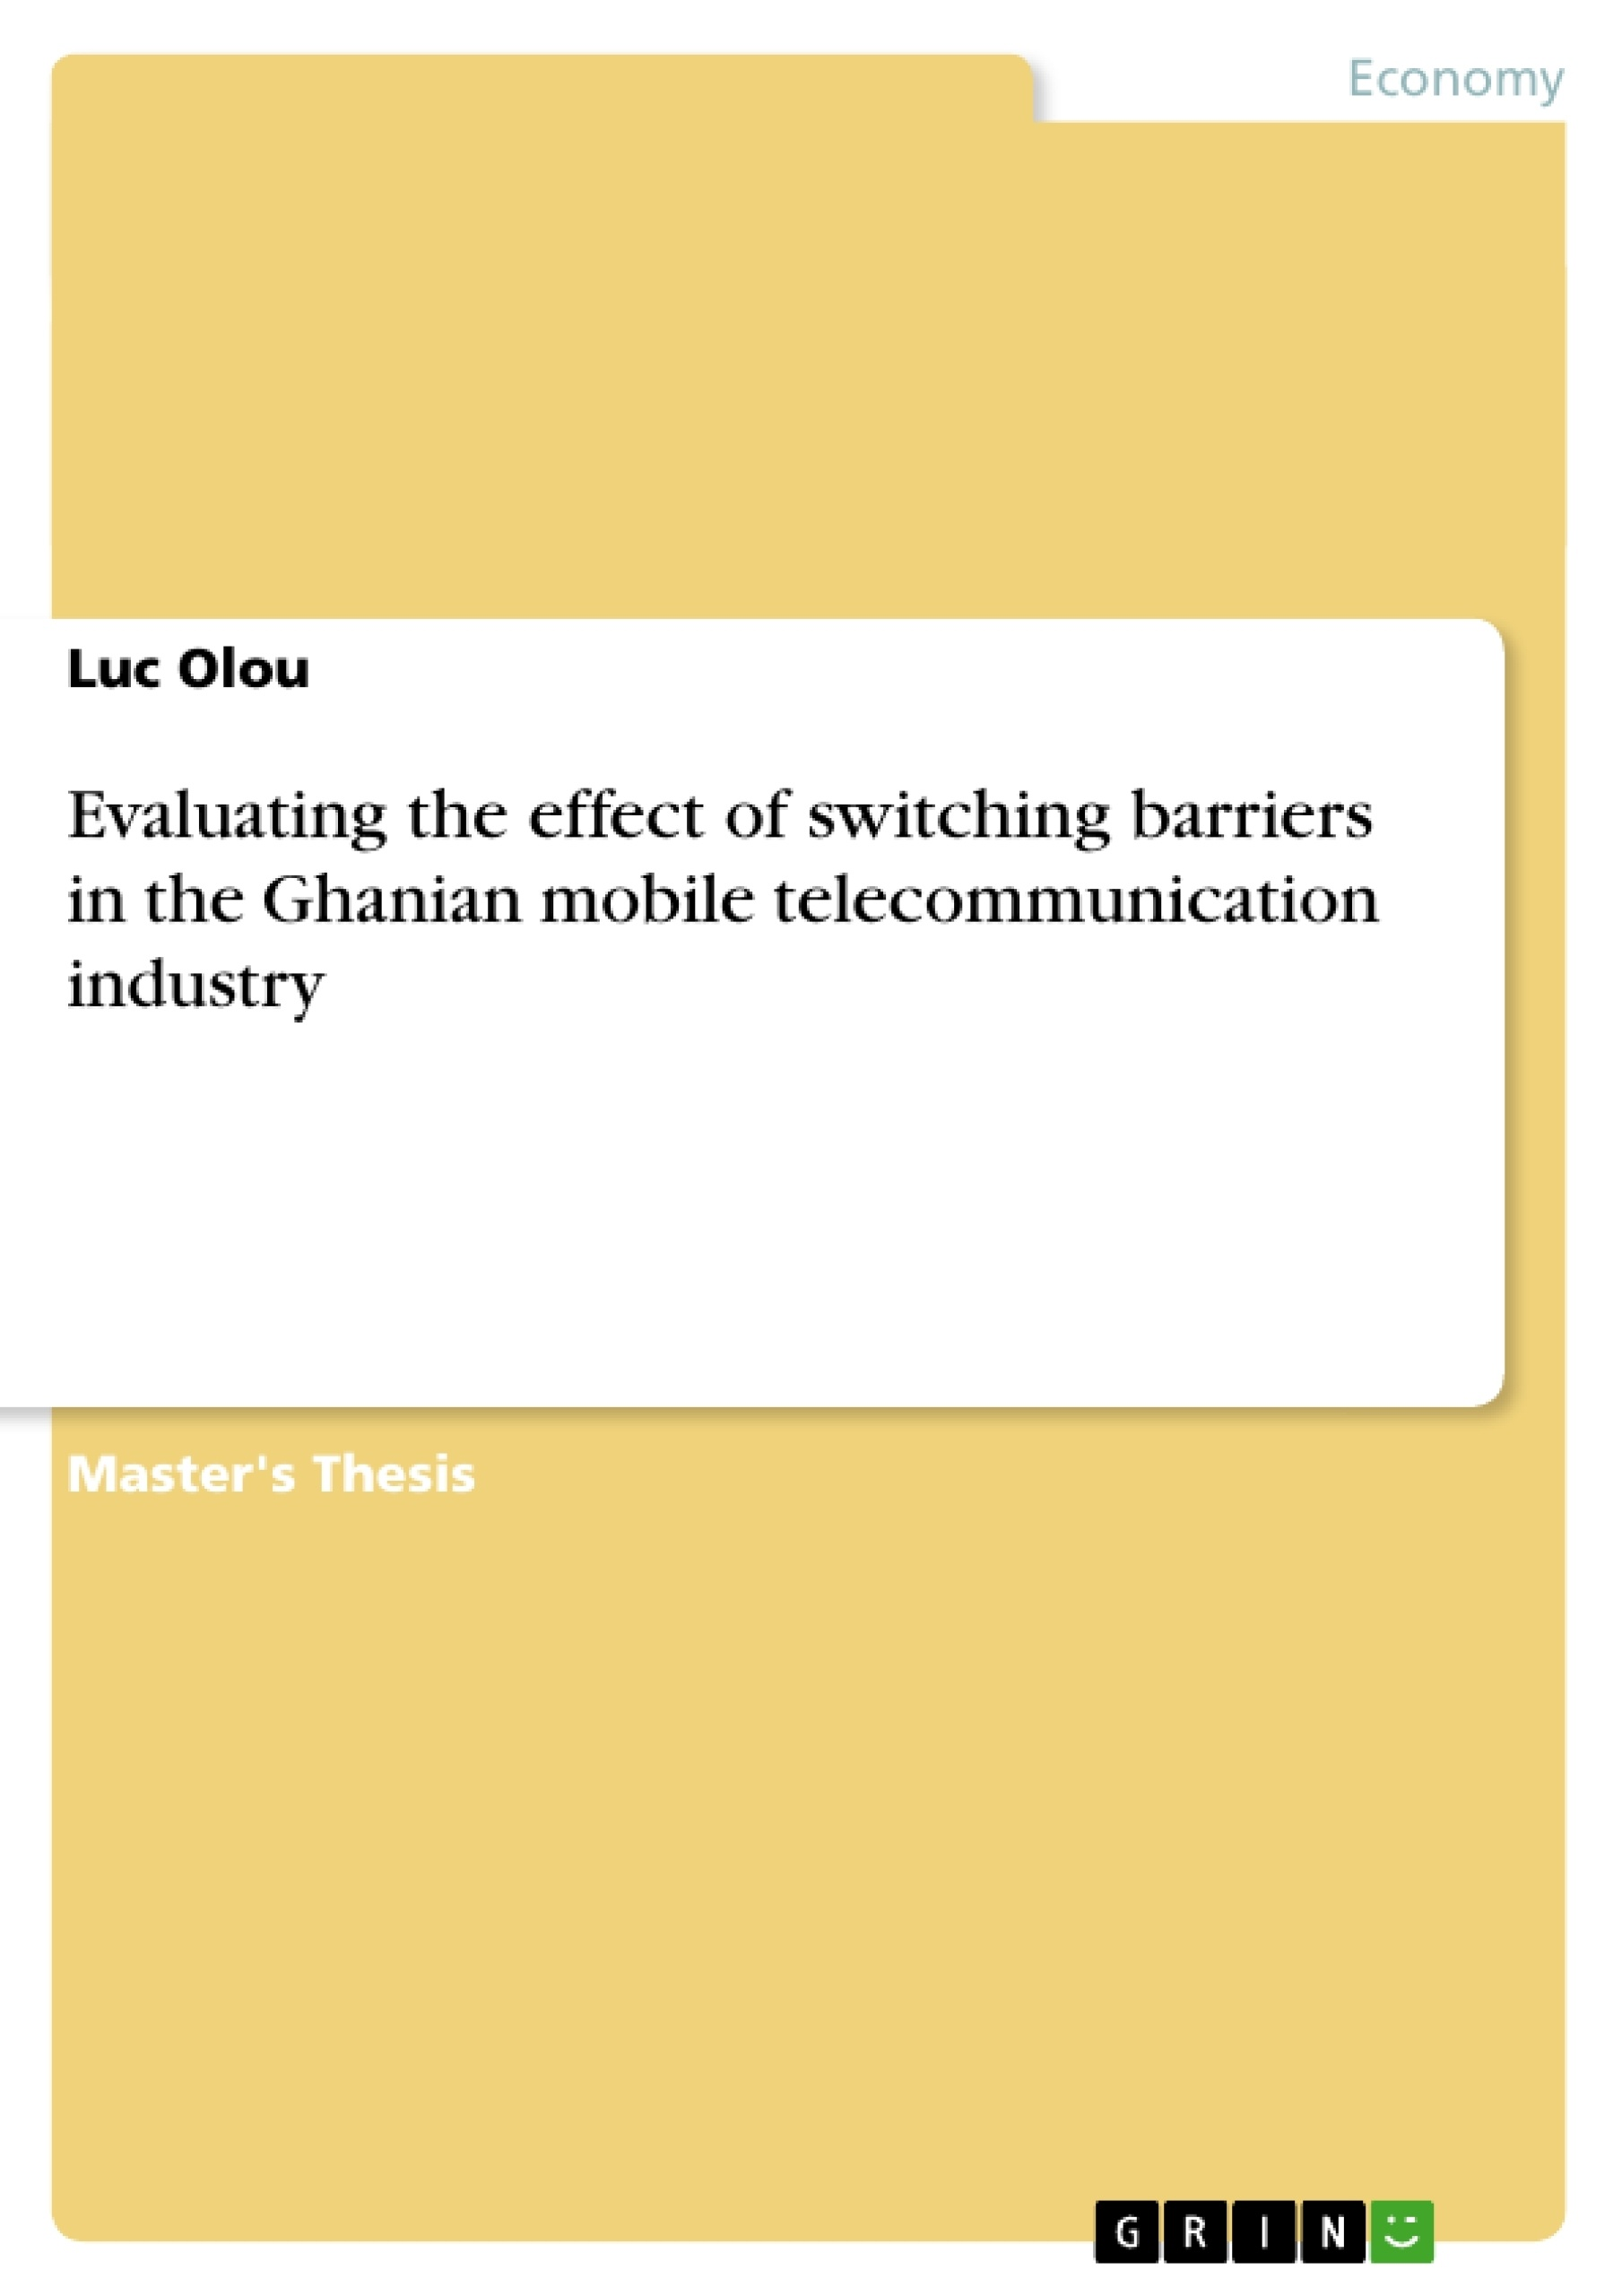 Title: Evaluating the effect of switching barriers in the Ghanian mobile telecommunication industry